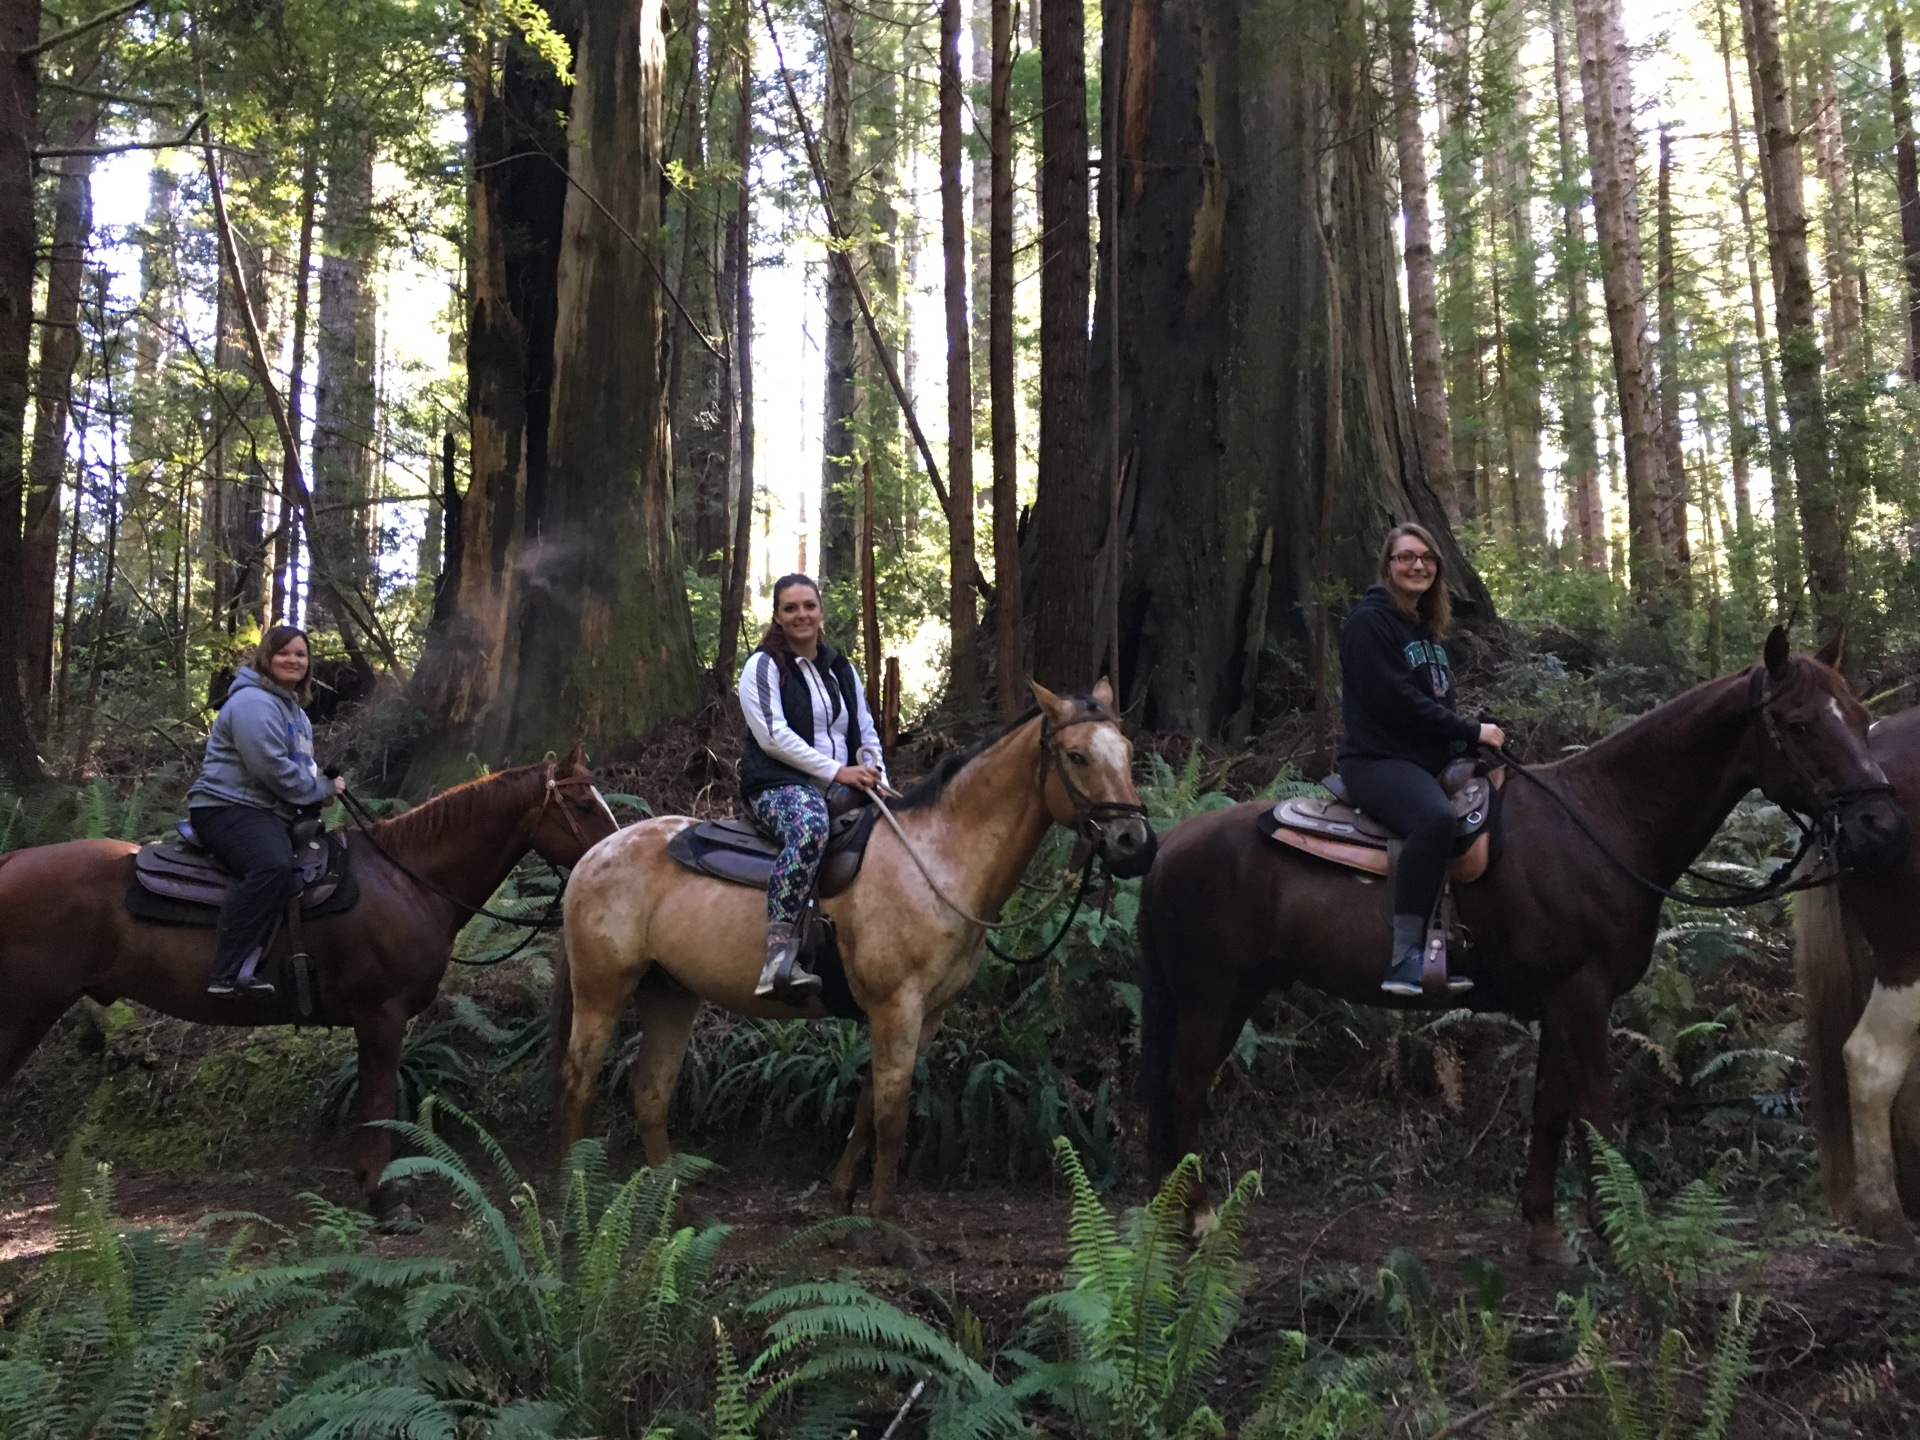 Rides In The Redwoods